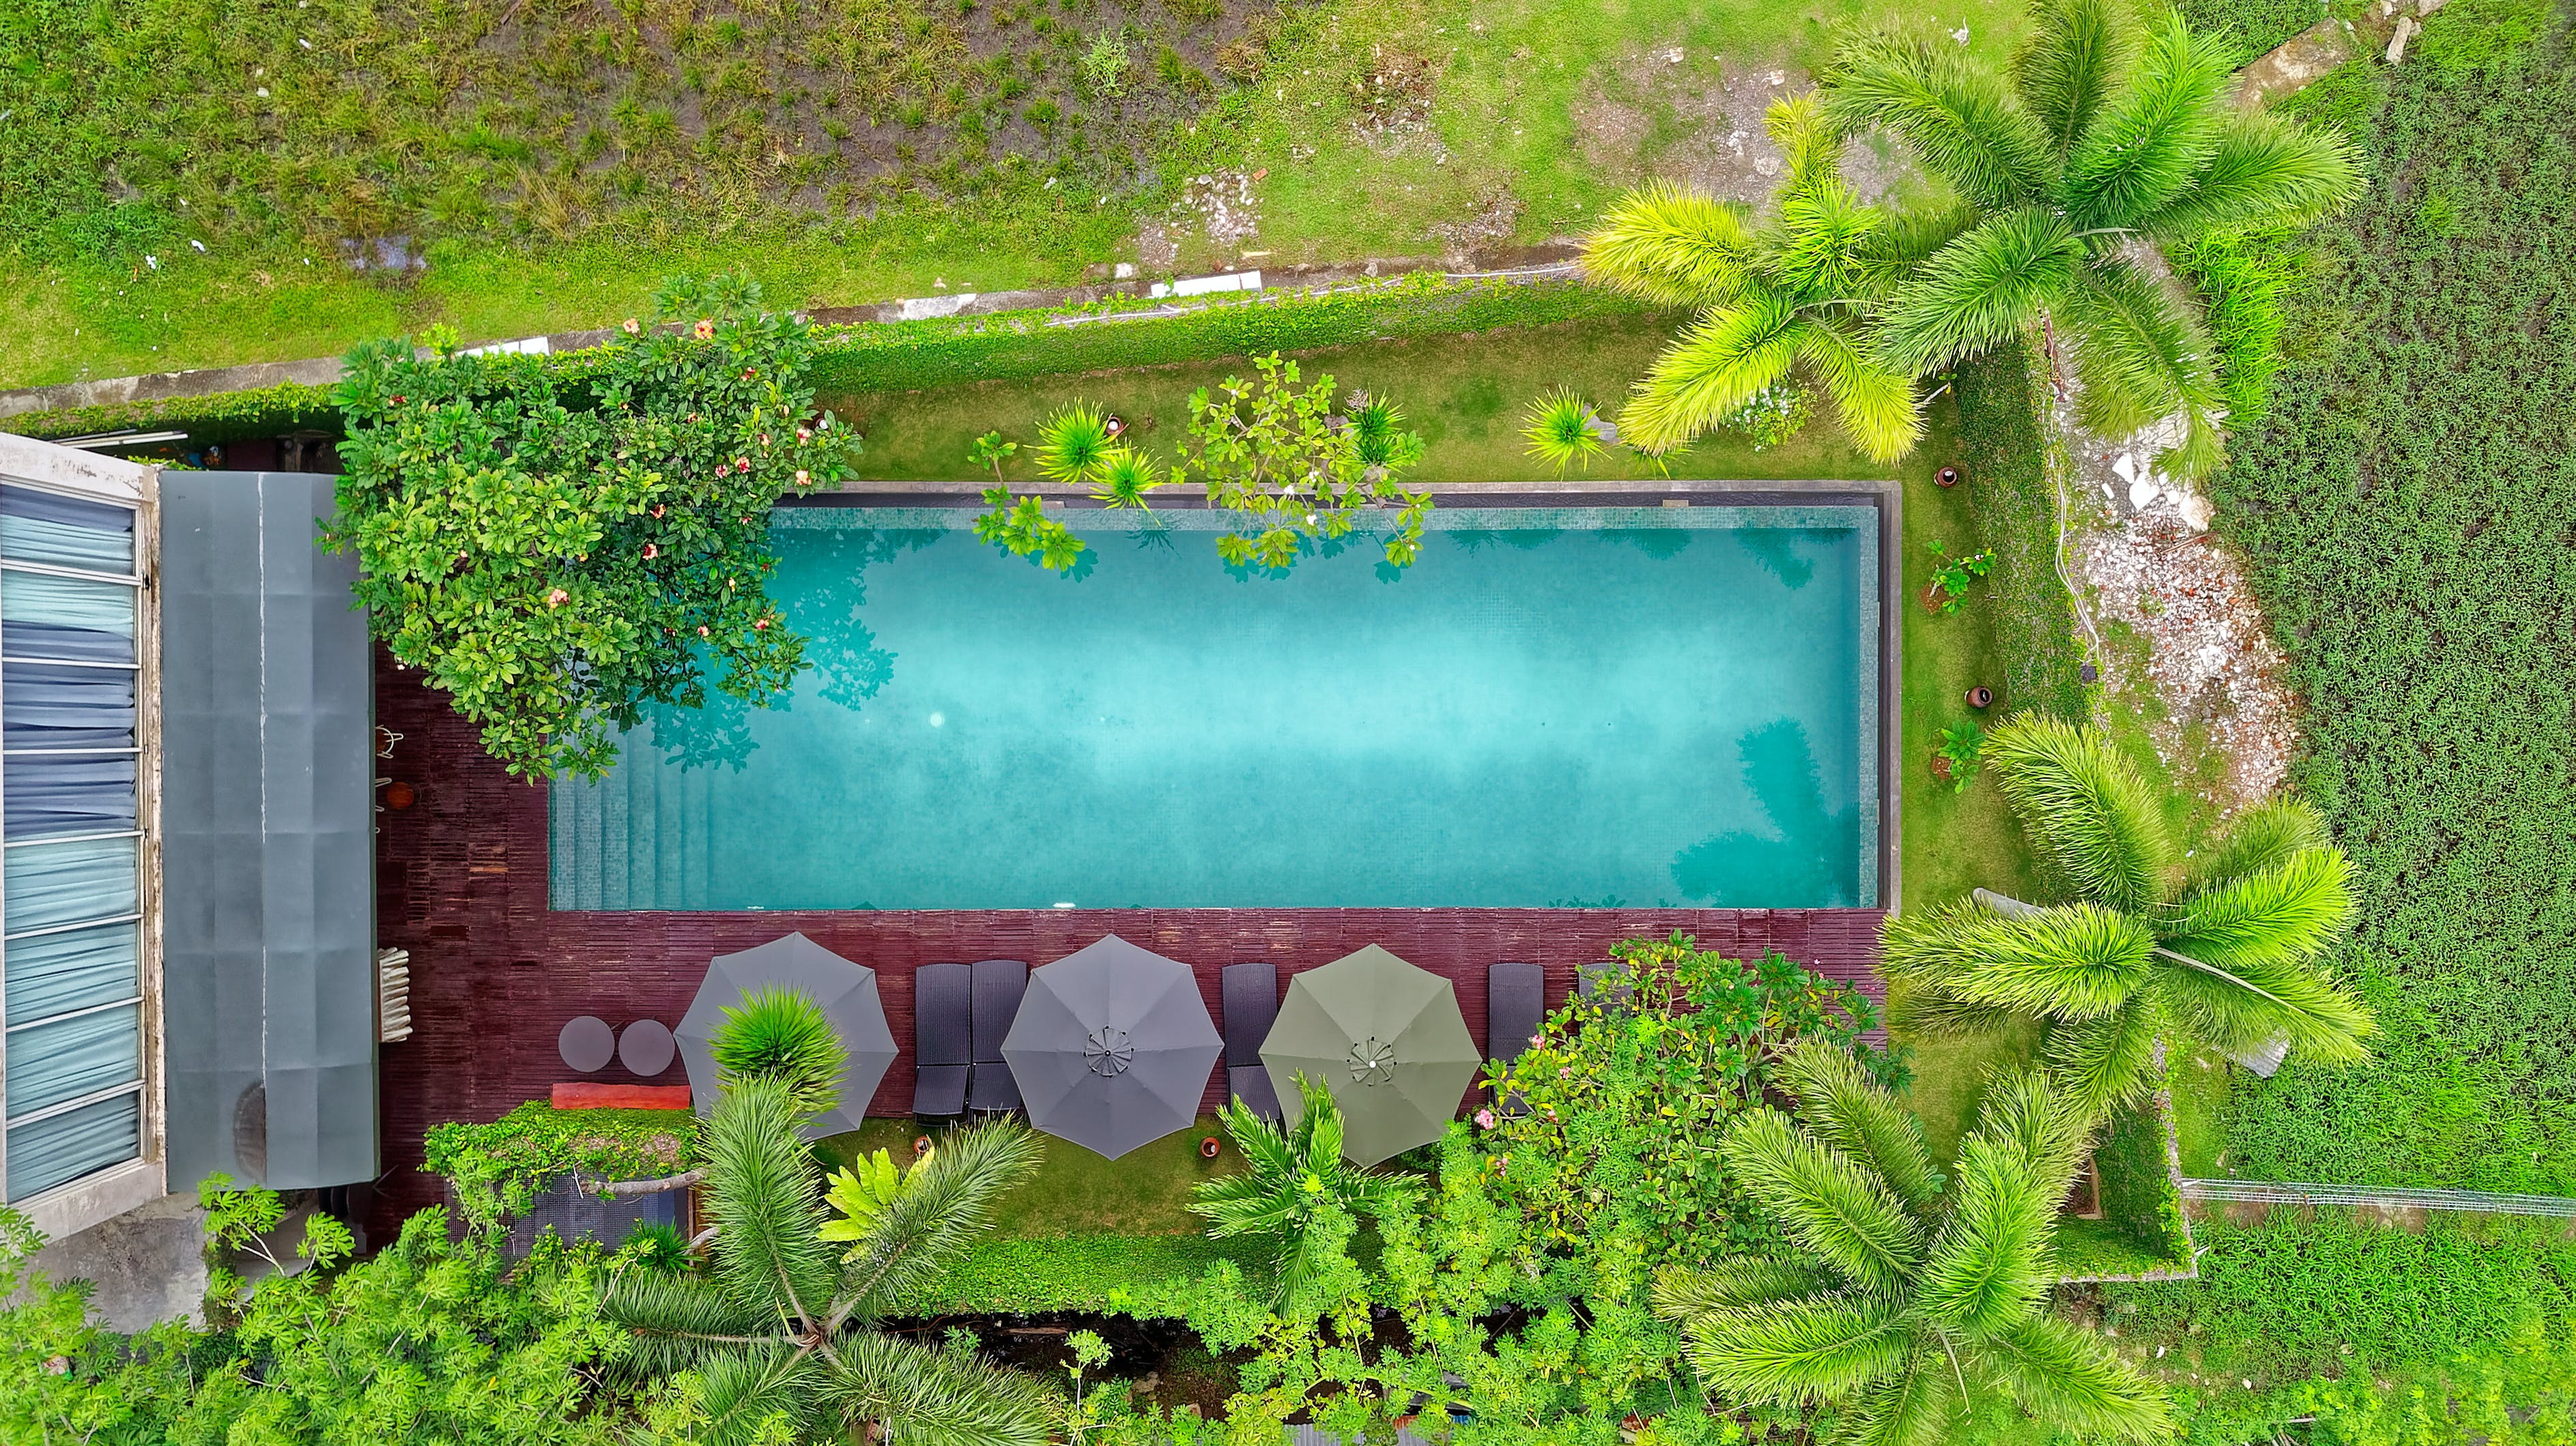 Bird's Eye View Photography Of Outdoor Pool